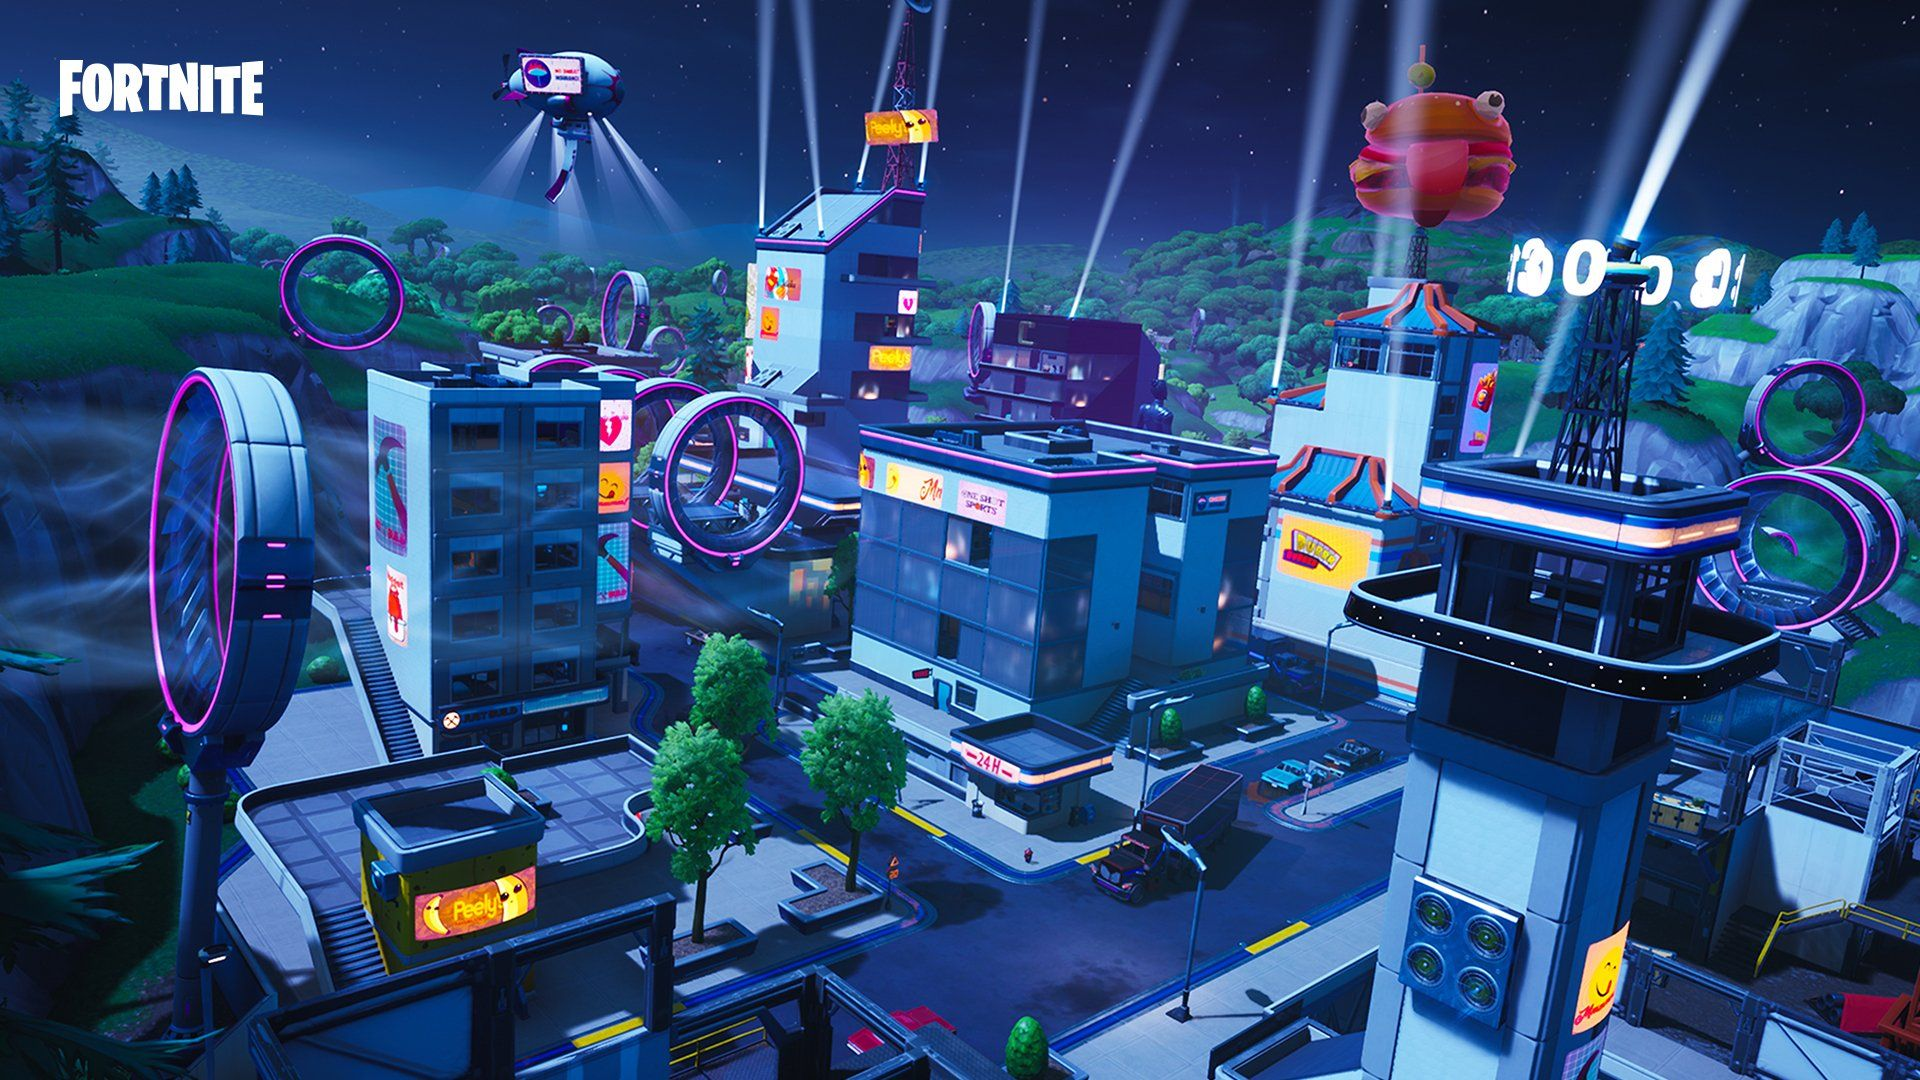 Fortnite On Twitter Fortnite Sci Fi City Battle Royale Game